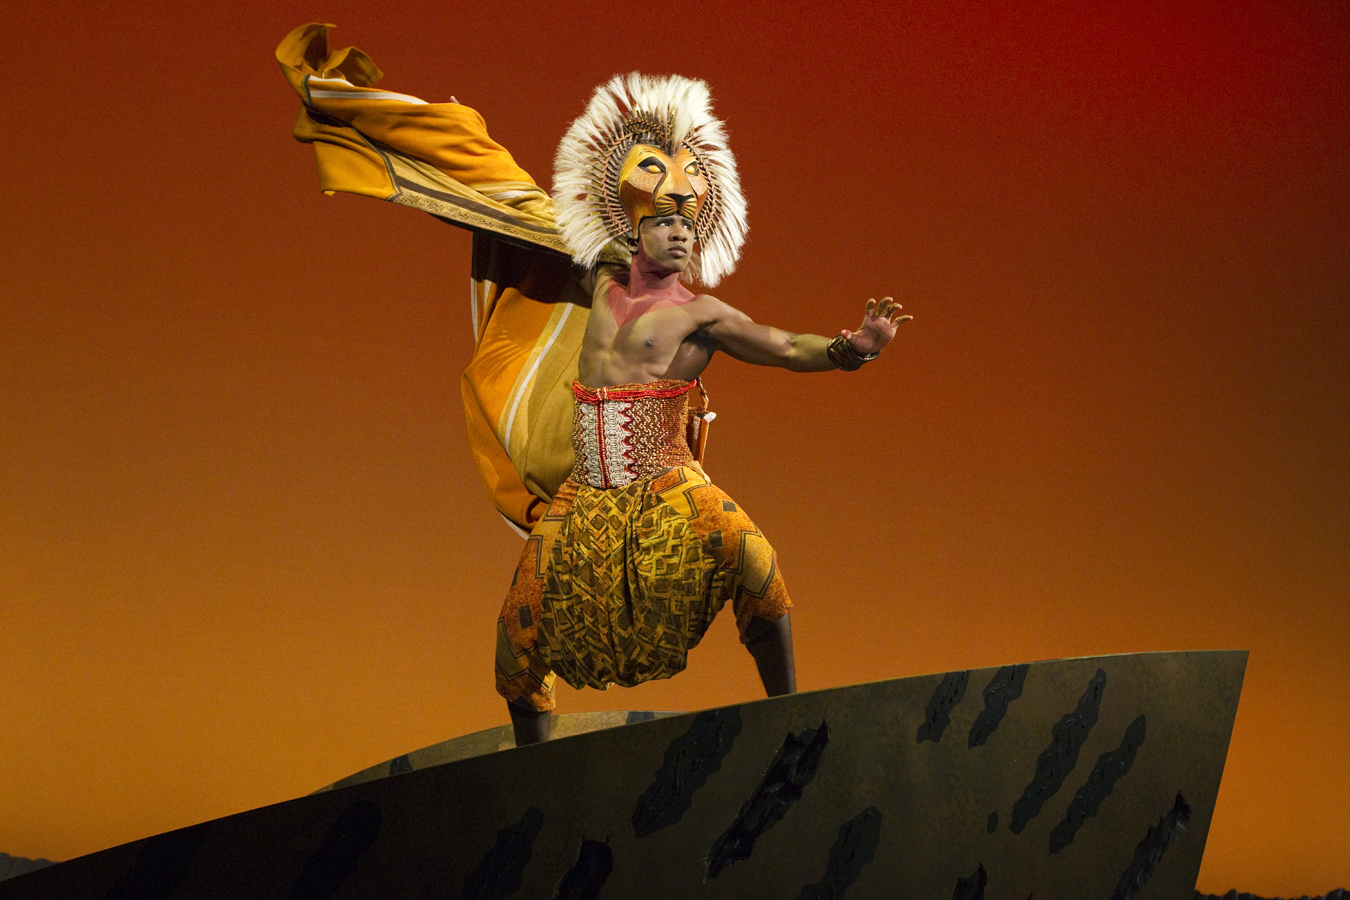 Regional Roundup: Top New Features This Week Around Our BroadwayWorld 7/7 - BEAUTIFUL, LION KING, DISASTER, and More!